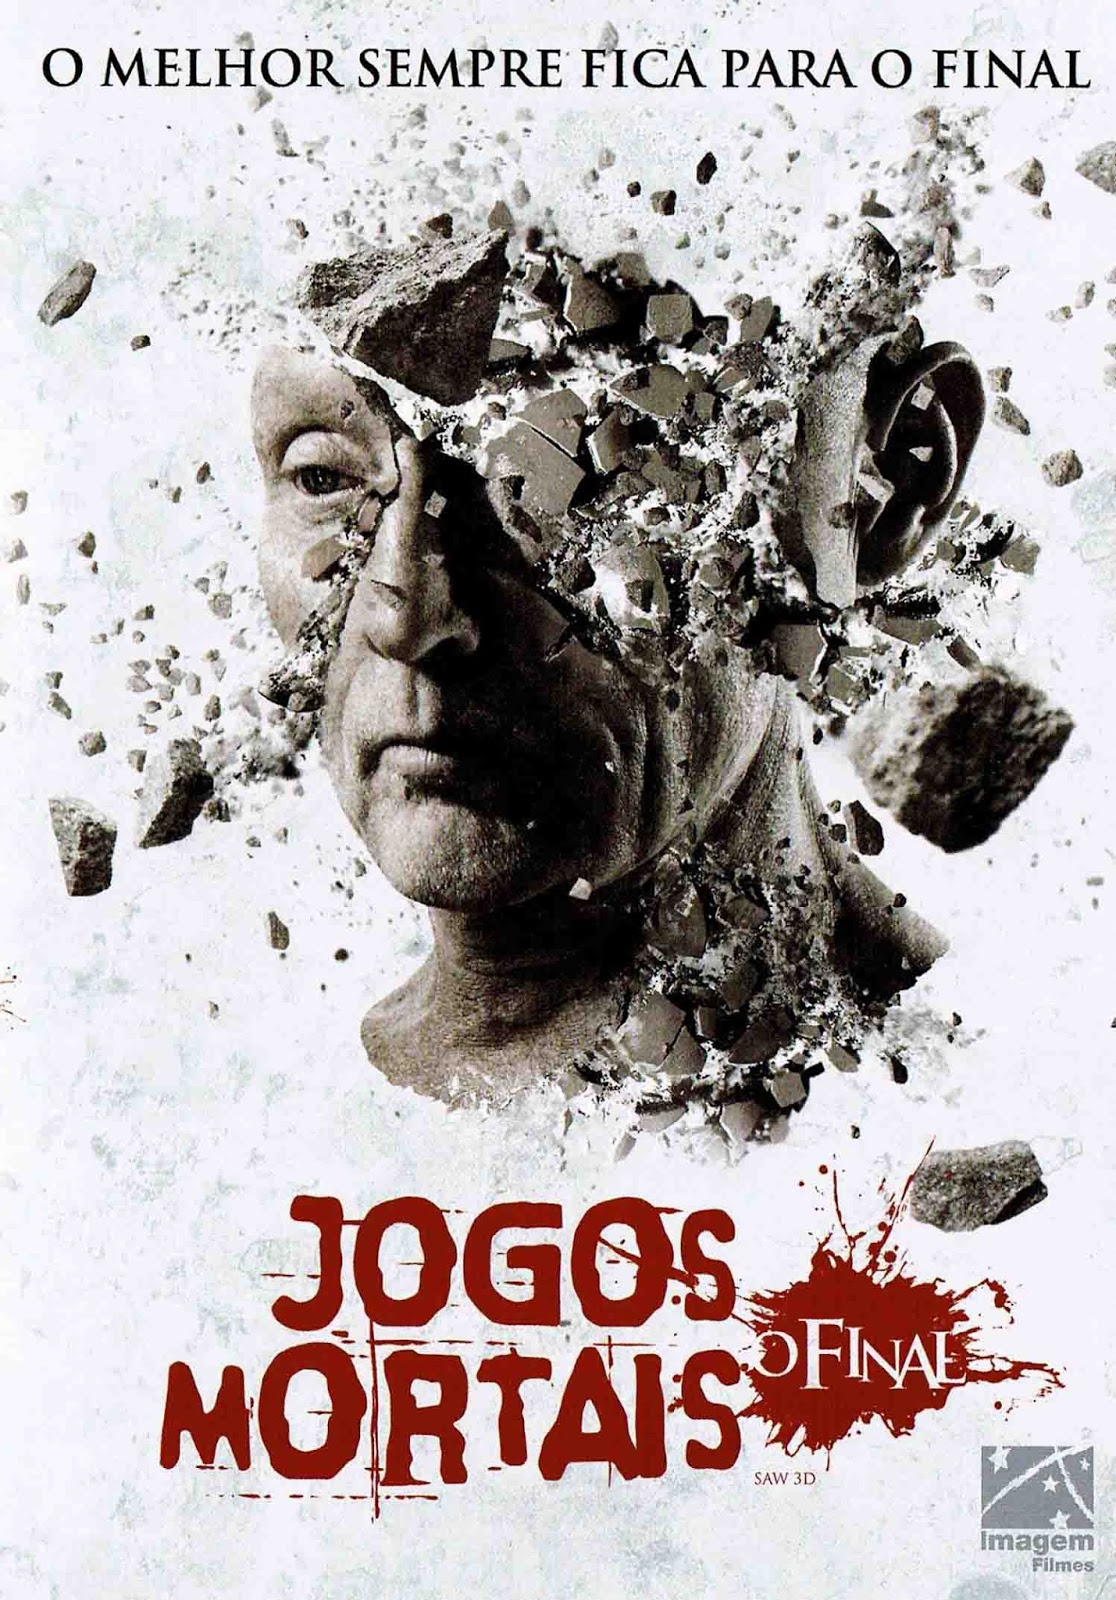 Jogos Mortais: O Final Torrent - Blu-ray Rip 720p e 1080p Dual Áudio (2010)